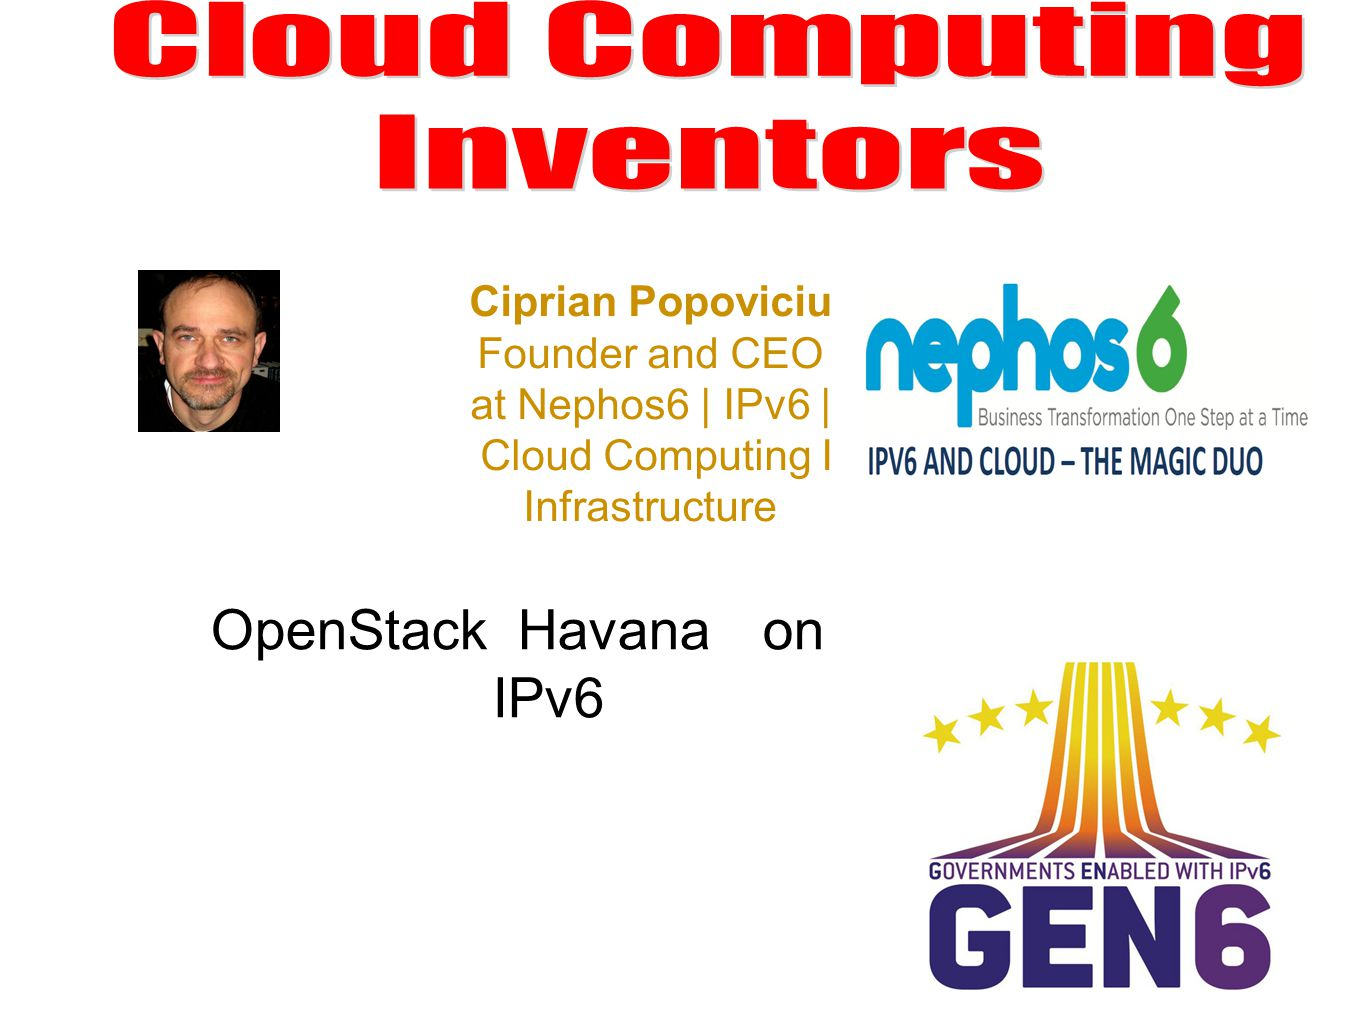 13 Ciprian Popoviciu Founder and CEO at Nephos6 | IPv6 | Cloud Computing I Infrastructure OpenStackHavanaon IPv6